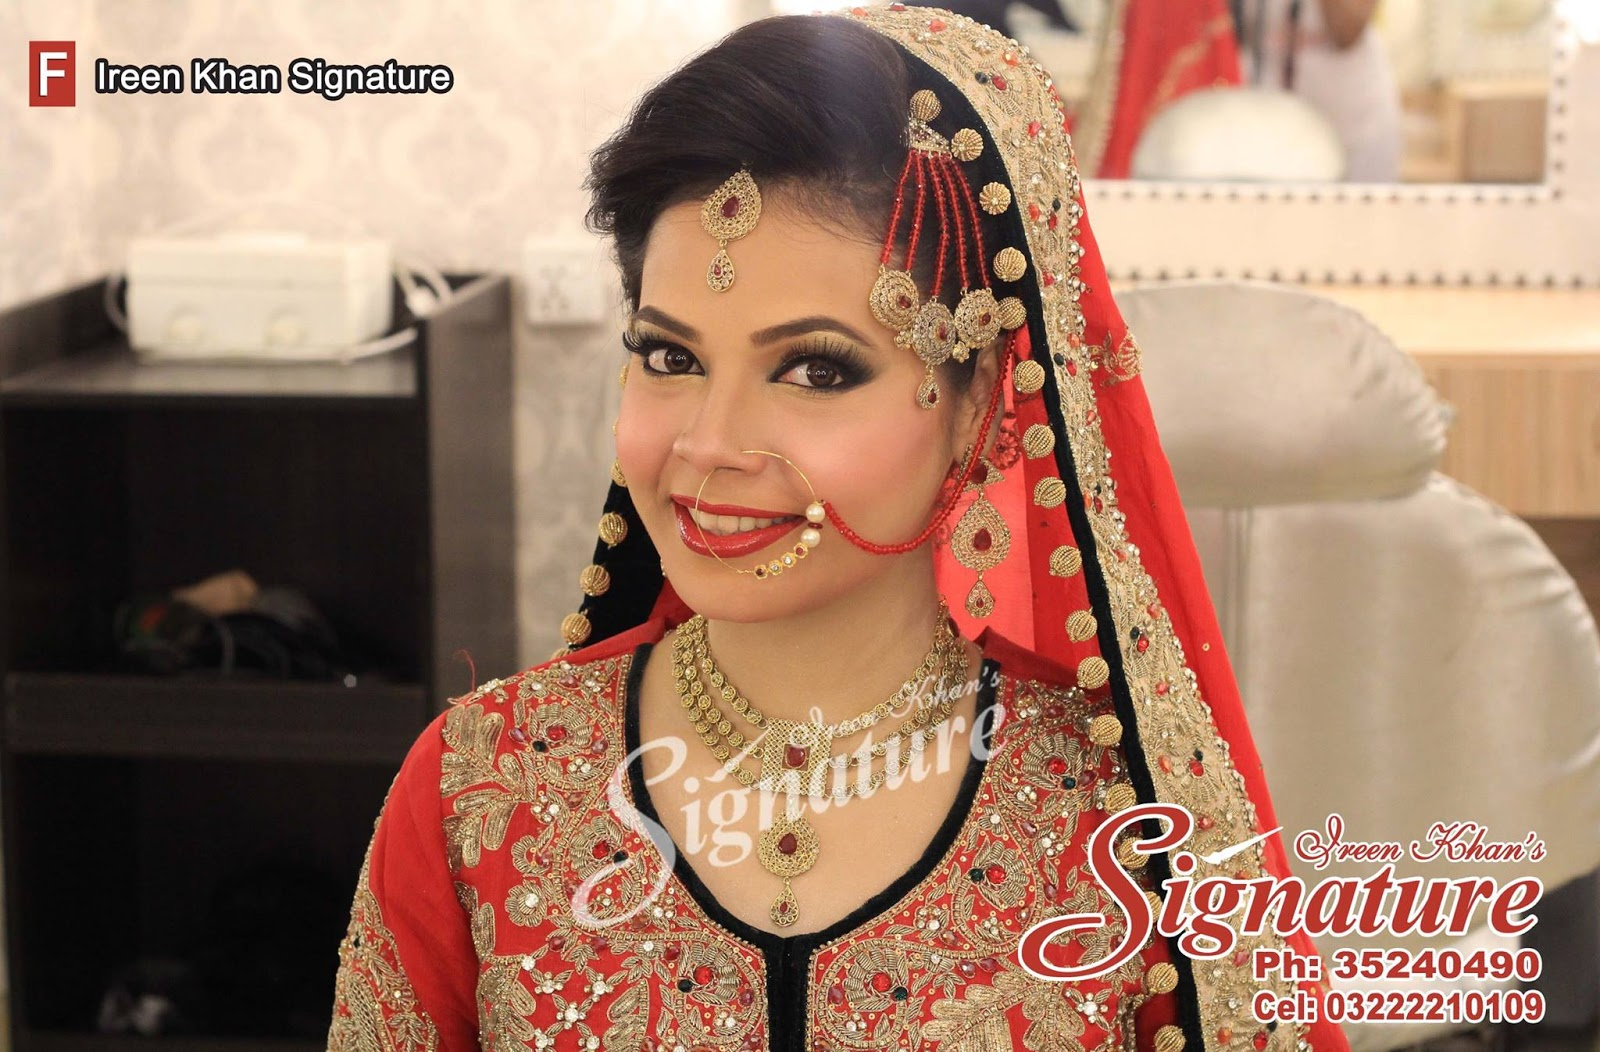 5 Most Popular Pakistani Beauty Parlors For Bridal Makeup | FS Fashionista